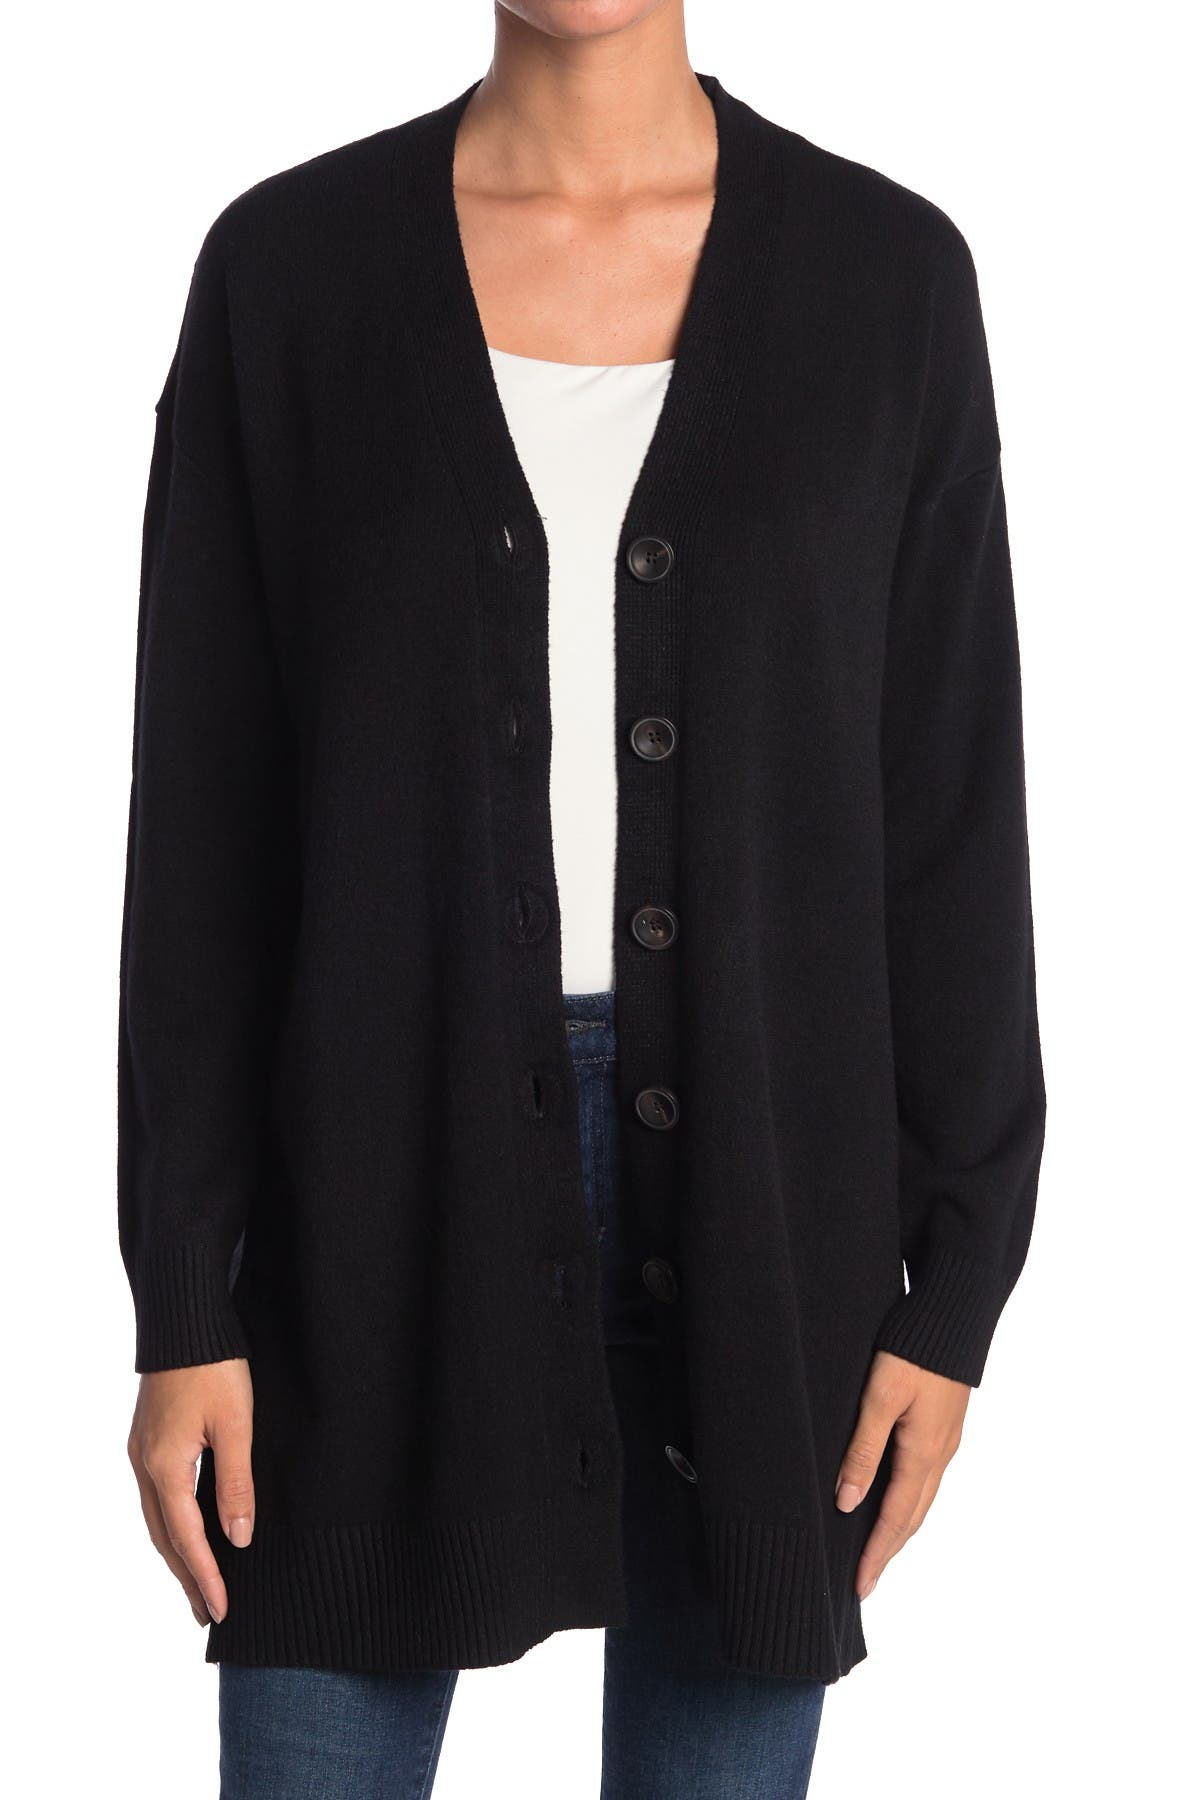 Image of Cyrus V-Neck Button Front Cardigan